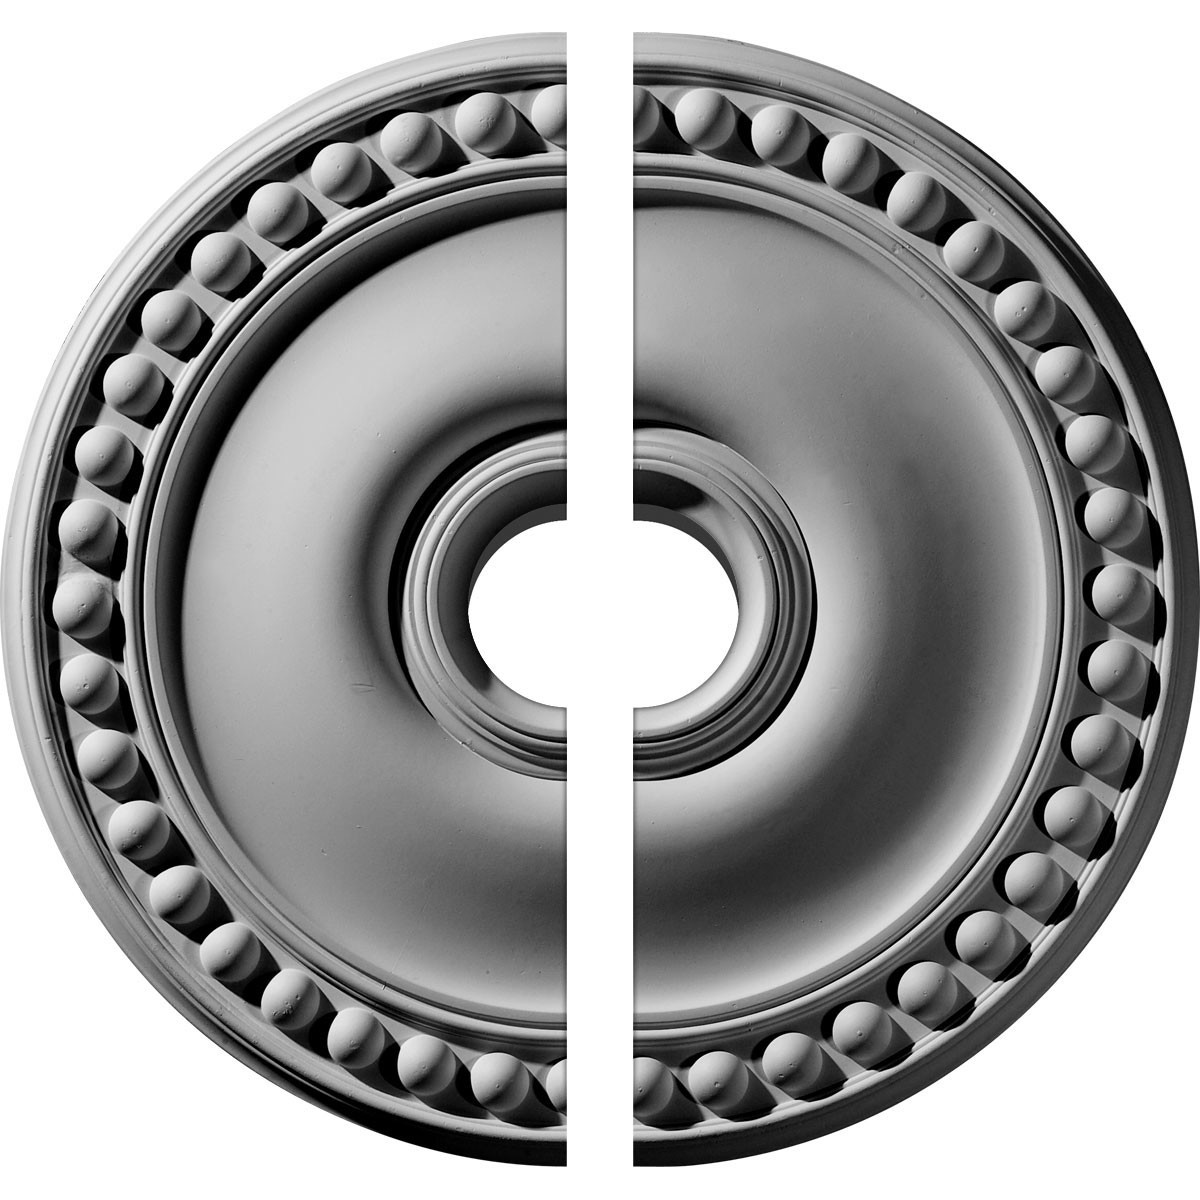 """EM-CM19FO2-03500 - 19 1/8""""OD x 3 1/2""""ID x 1""""P Foster Ceiling Medallion, Two Piece (Fits Canopies up to 5 5/8"""")"""